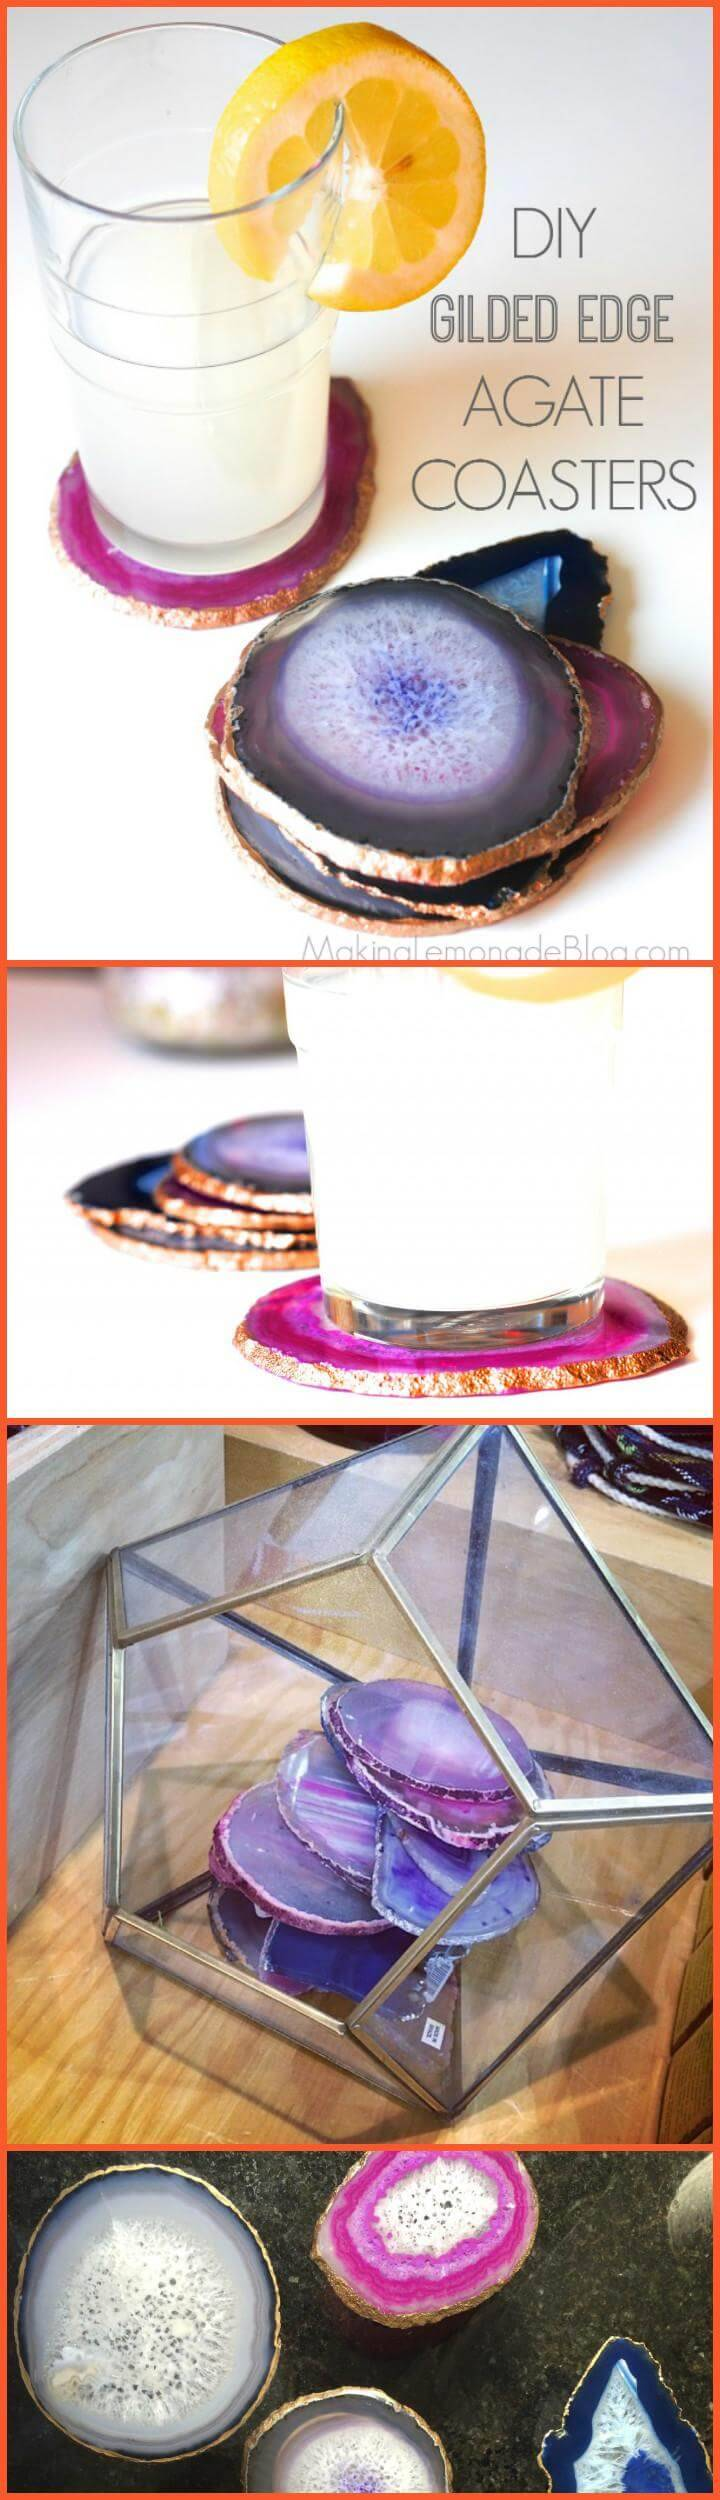 DIY easy yet beautiful gilded edge agate coasters Mother's Day Gift